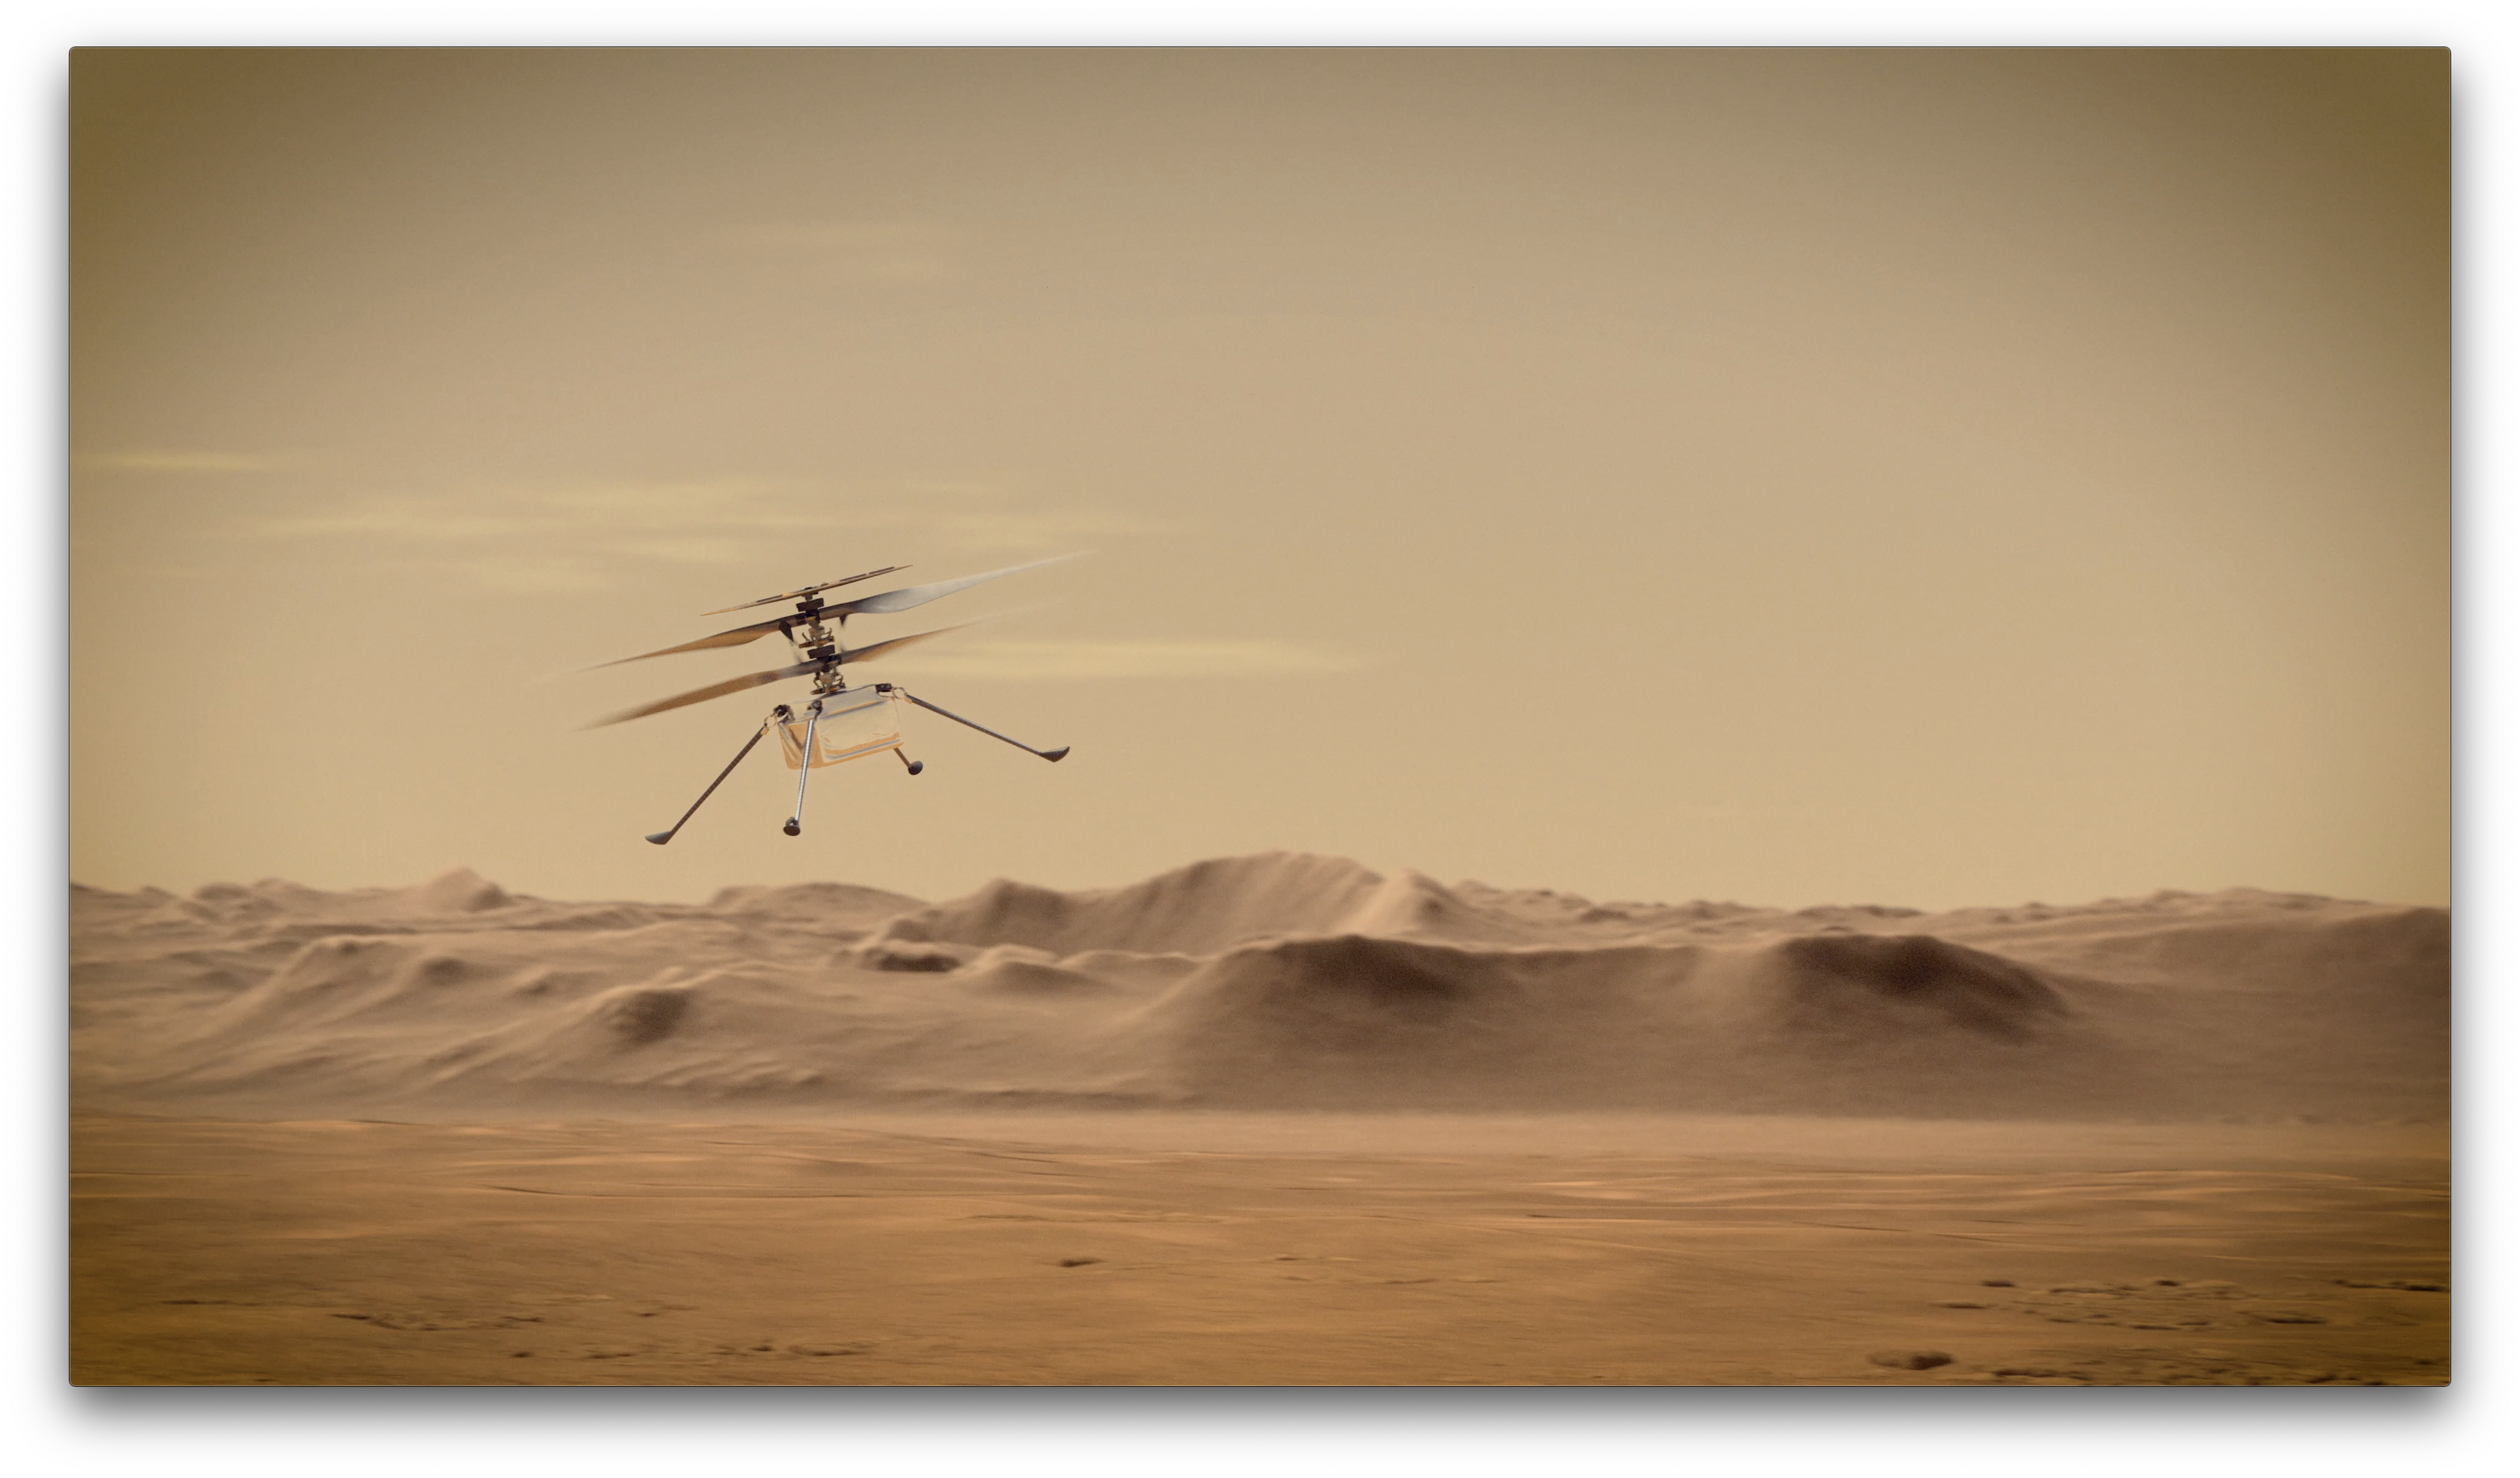 NASA delays Ingenuity helicopter's historic first flight on Mars - CNET